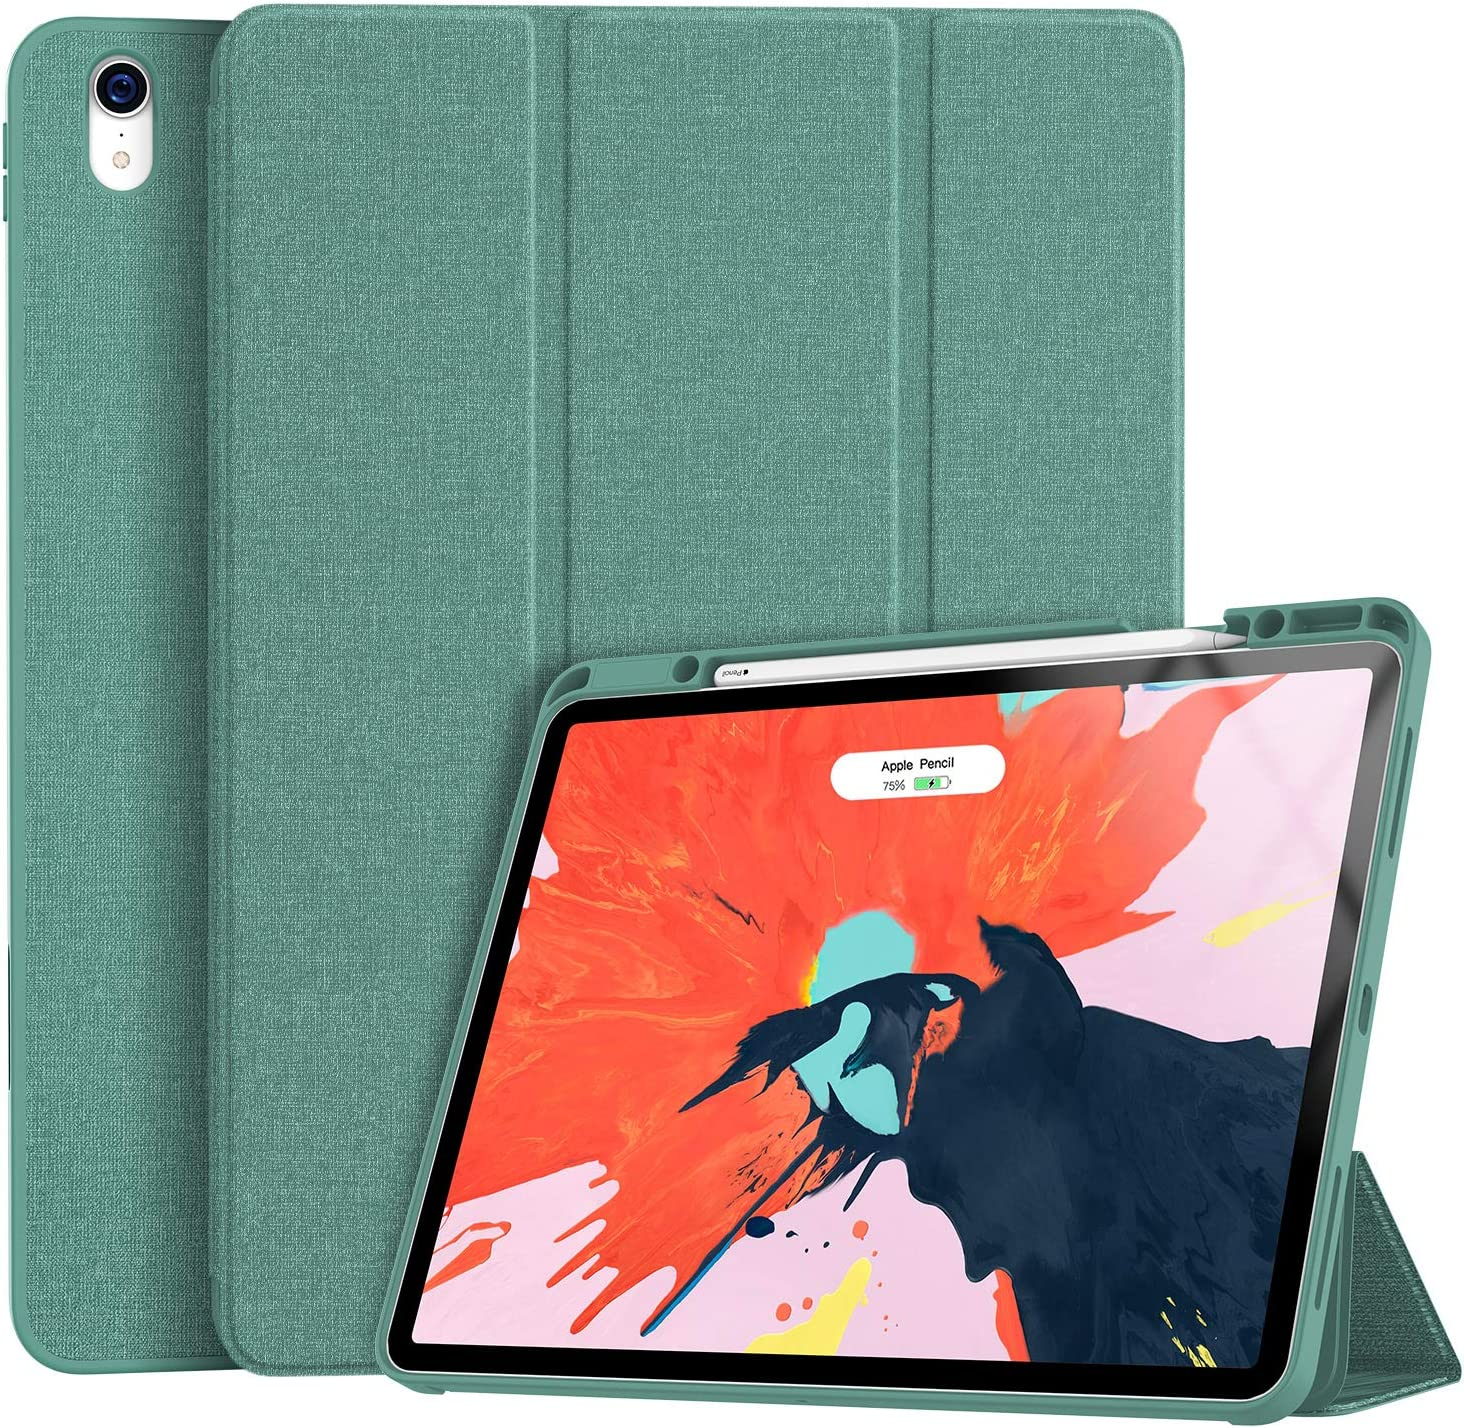 Premium Trifold Case Soke Ipad Pro 12.9 Case 2018 With Pencil Holder Strong Pr